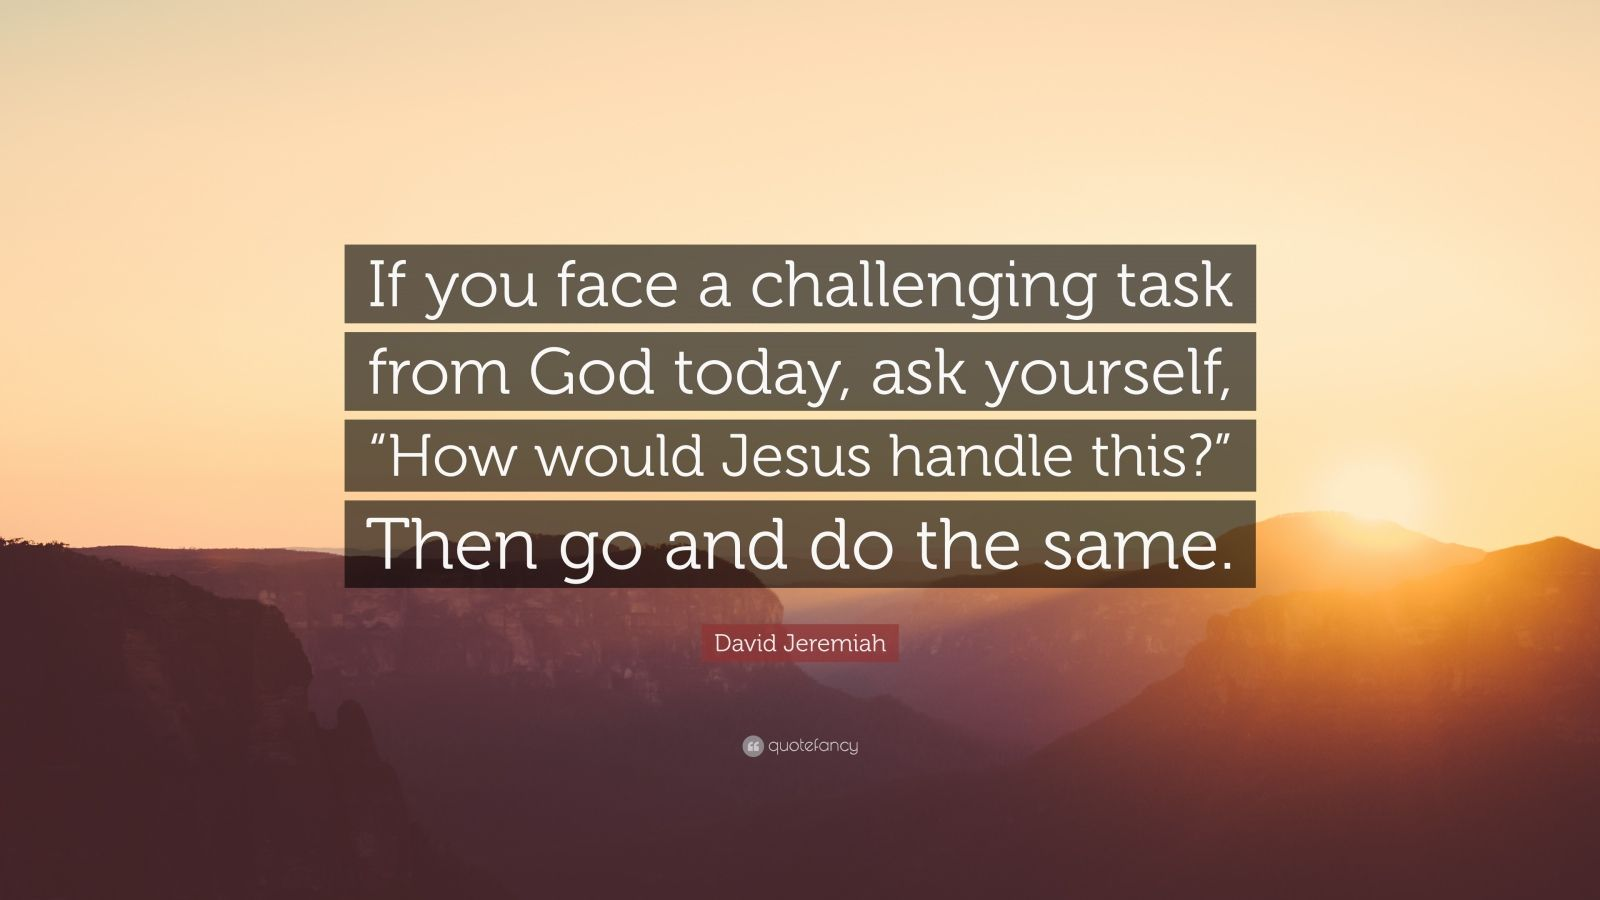 """David Jeremiah Quote: """"If you face a challenging task from God today, ask yourself, """"How would Jesus handle this?"""" Then go and do the same."""""""